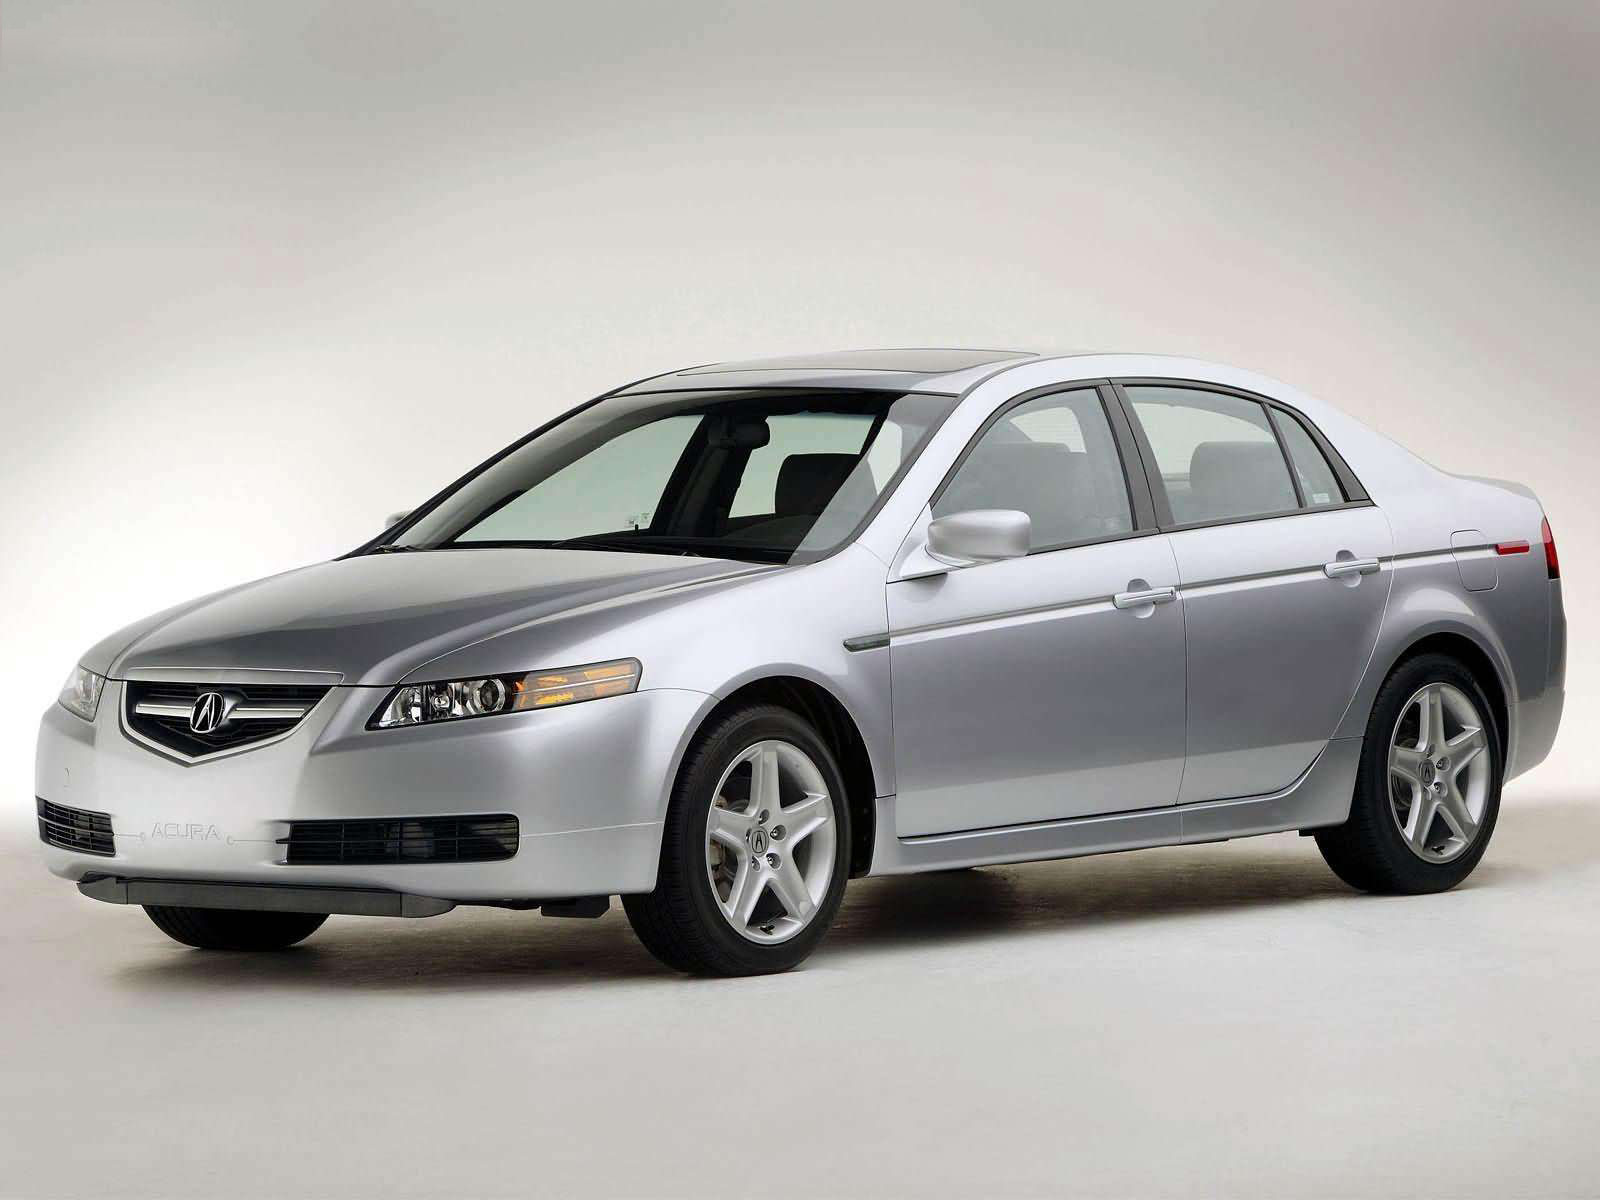 2004 Acura 32 Tl Auto Insurance Information